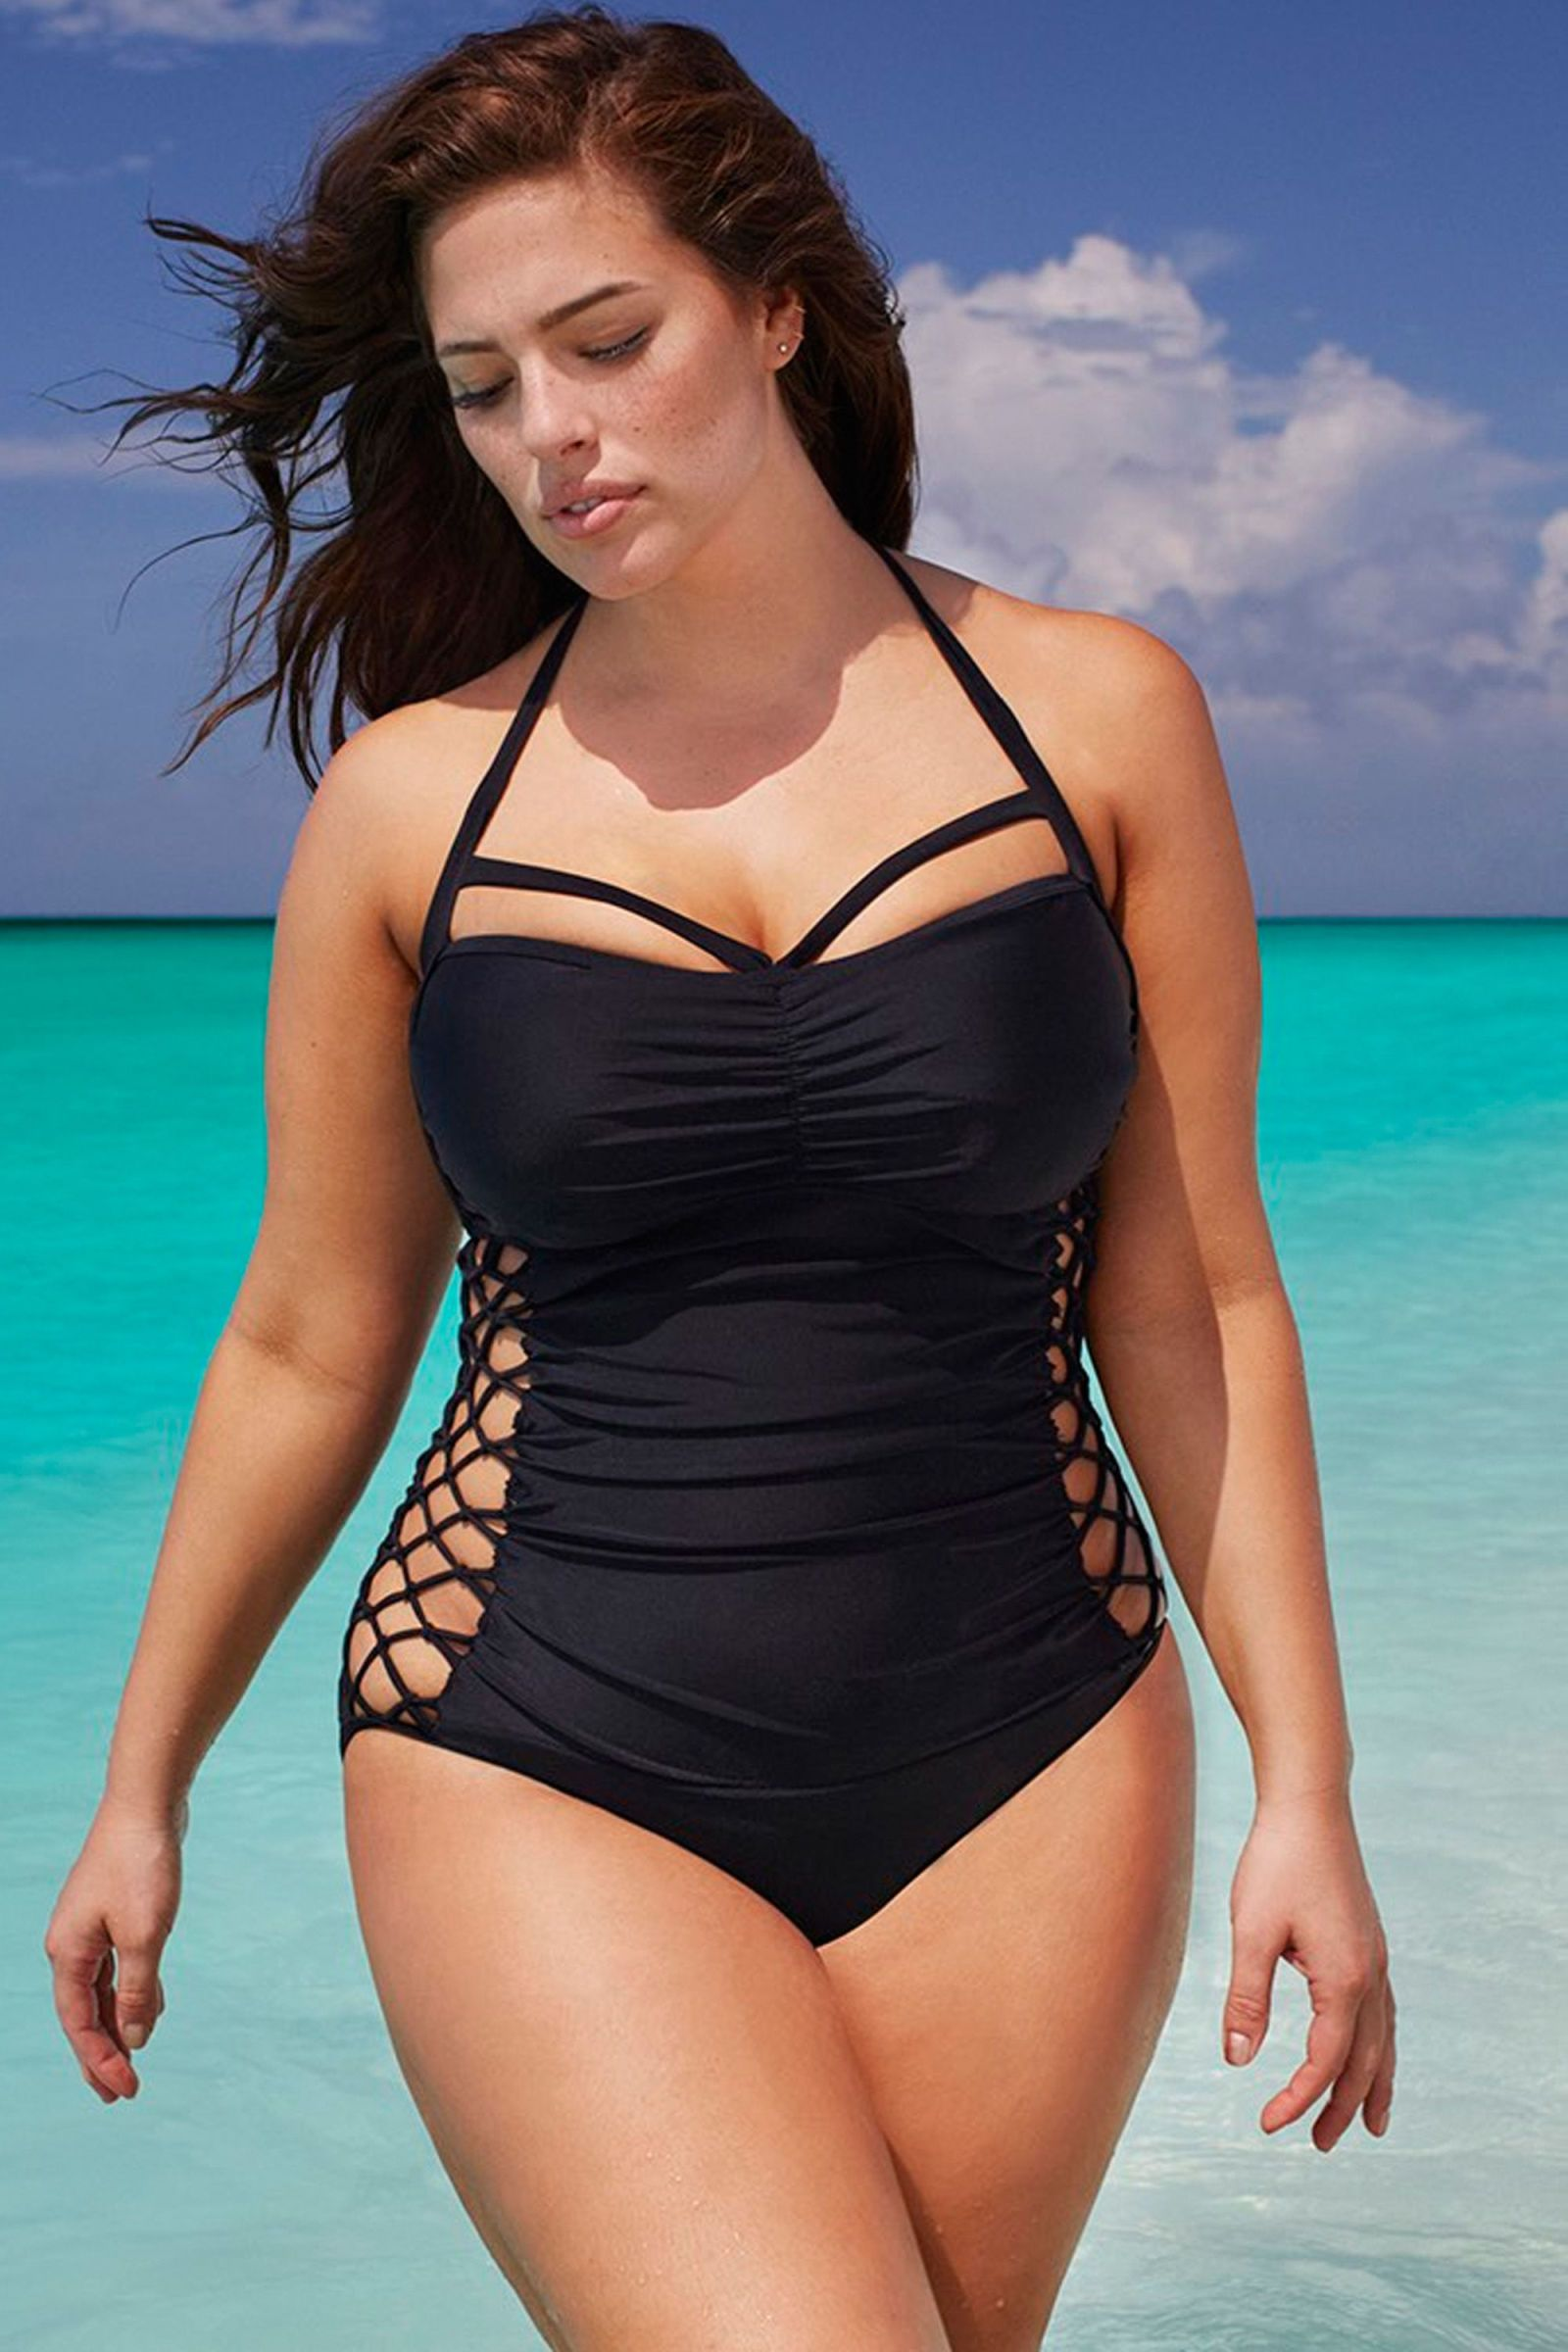 baec68aefe849 ... Swim Sexy Women's Boss Underwire Swimsuit. The 20 Most Flattering One-Piece  Swimsuits